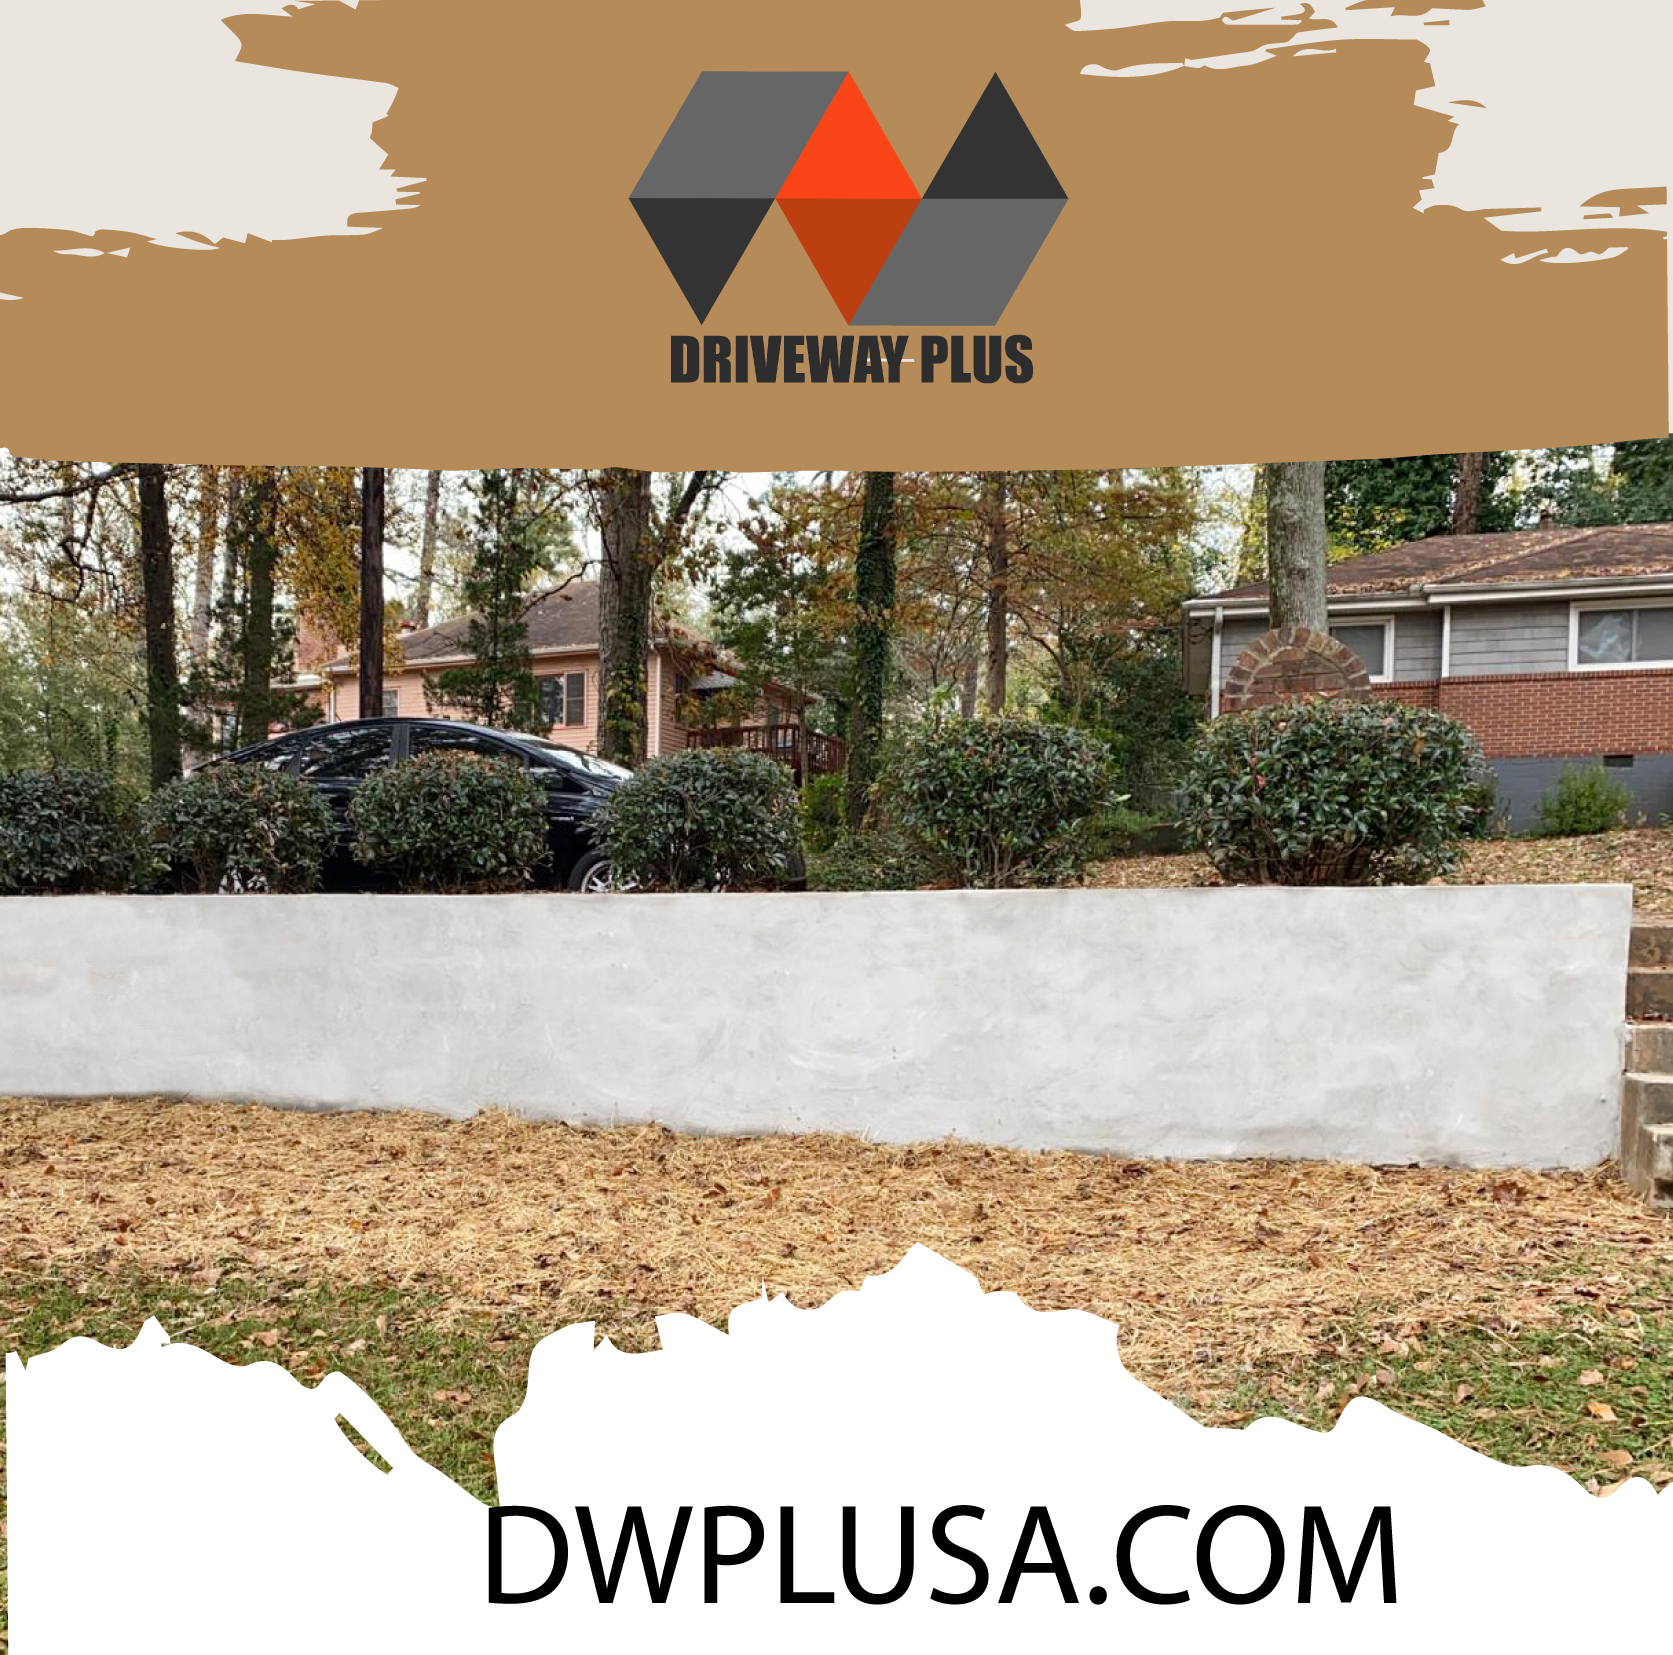 Cinder block retaining wall with stucco finishing